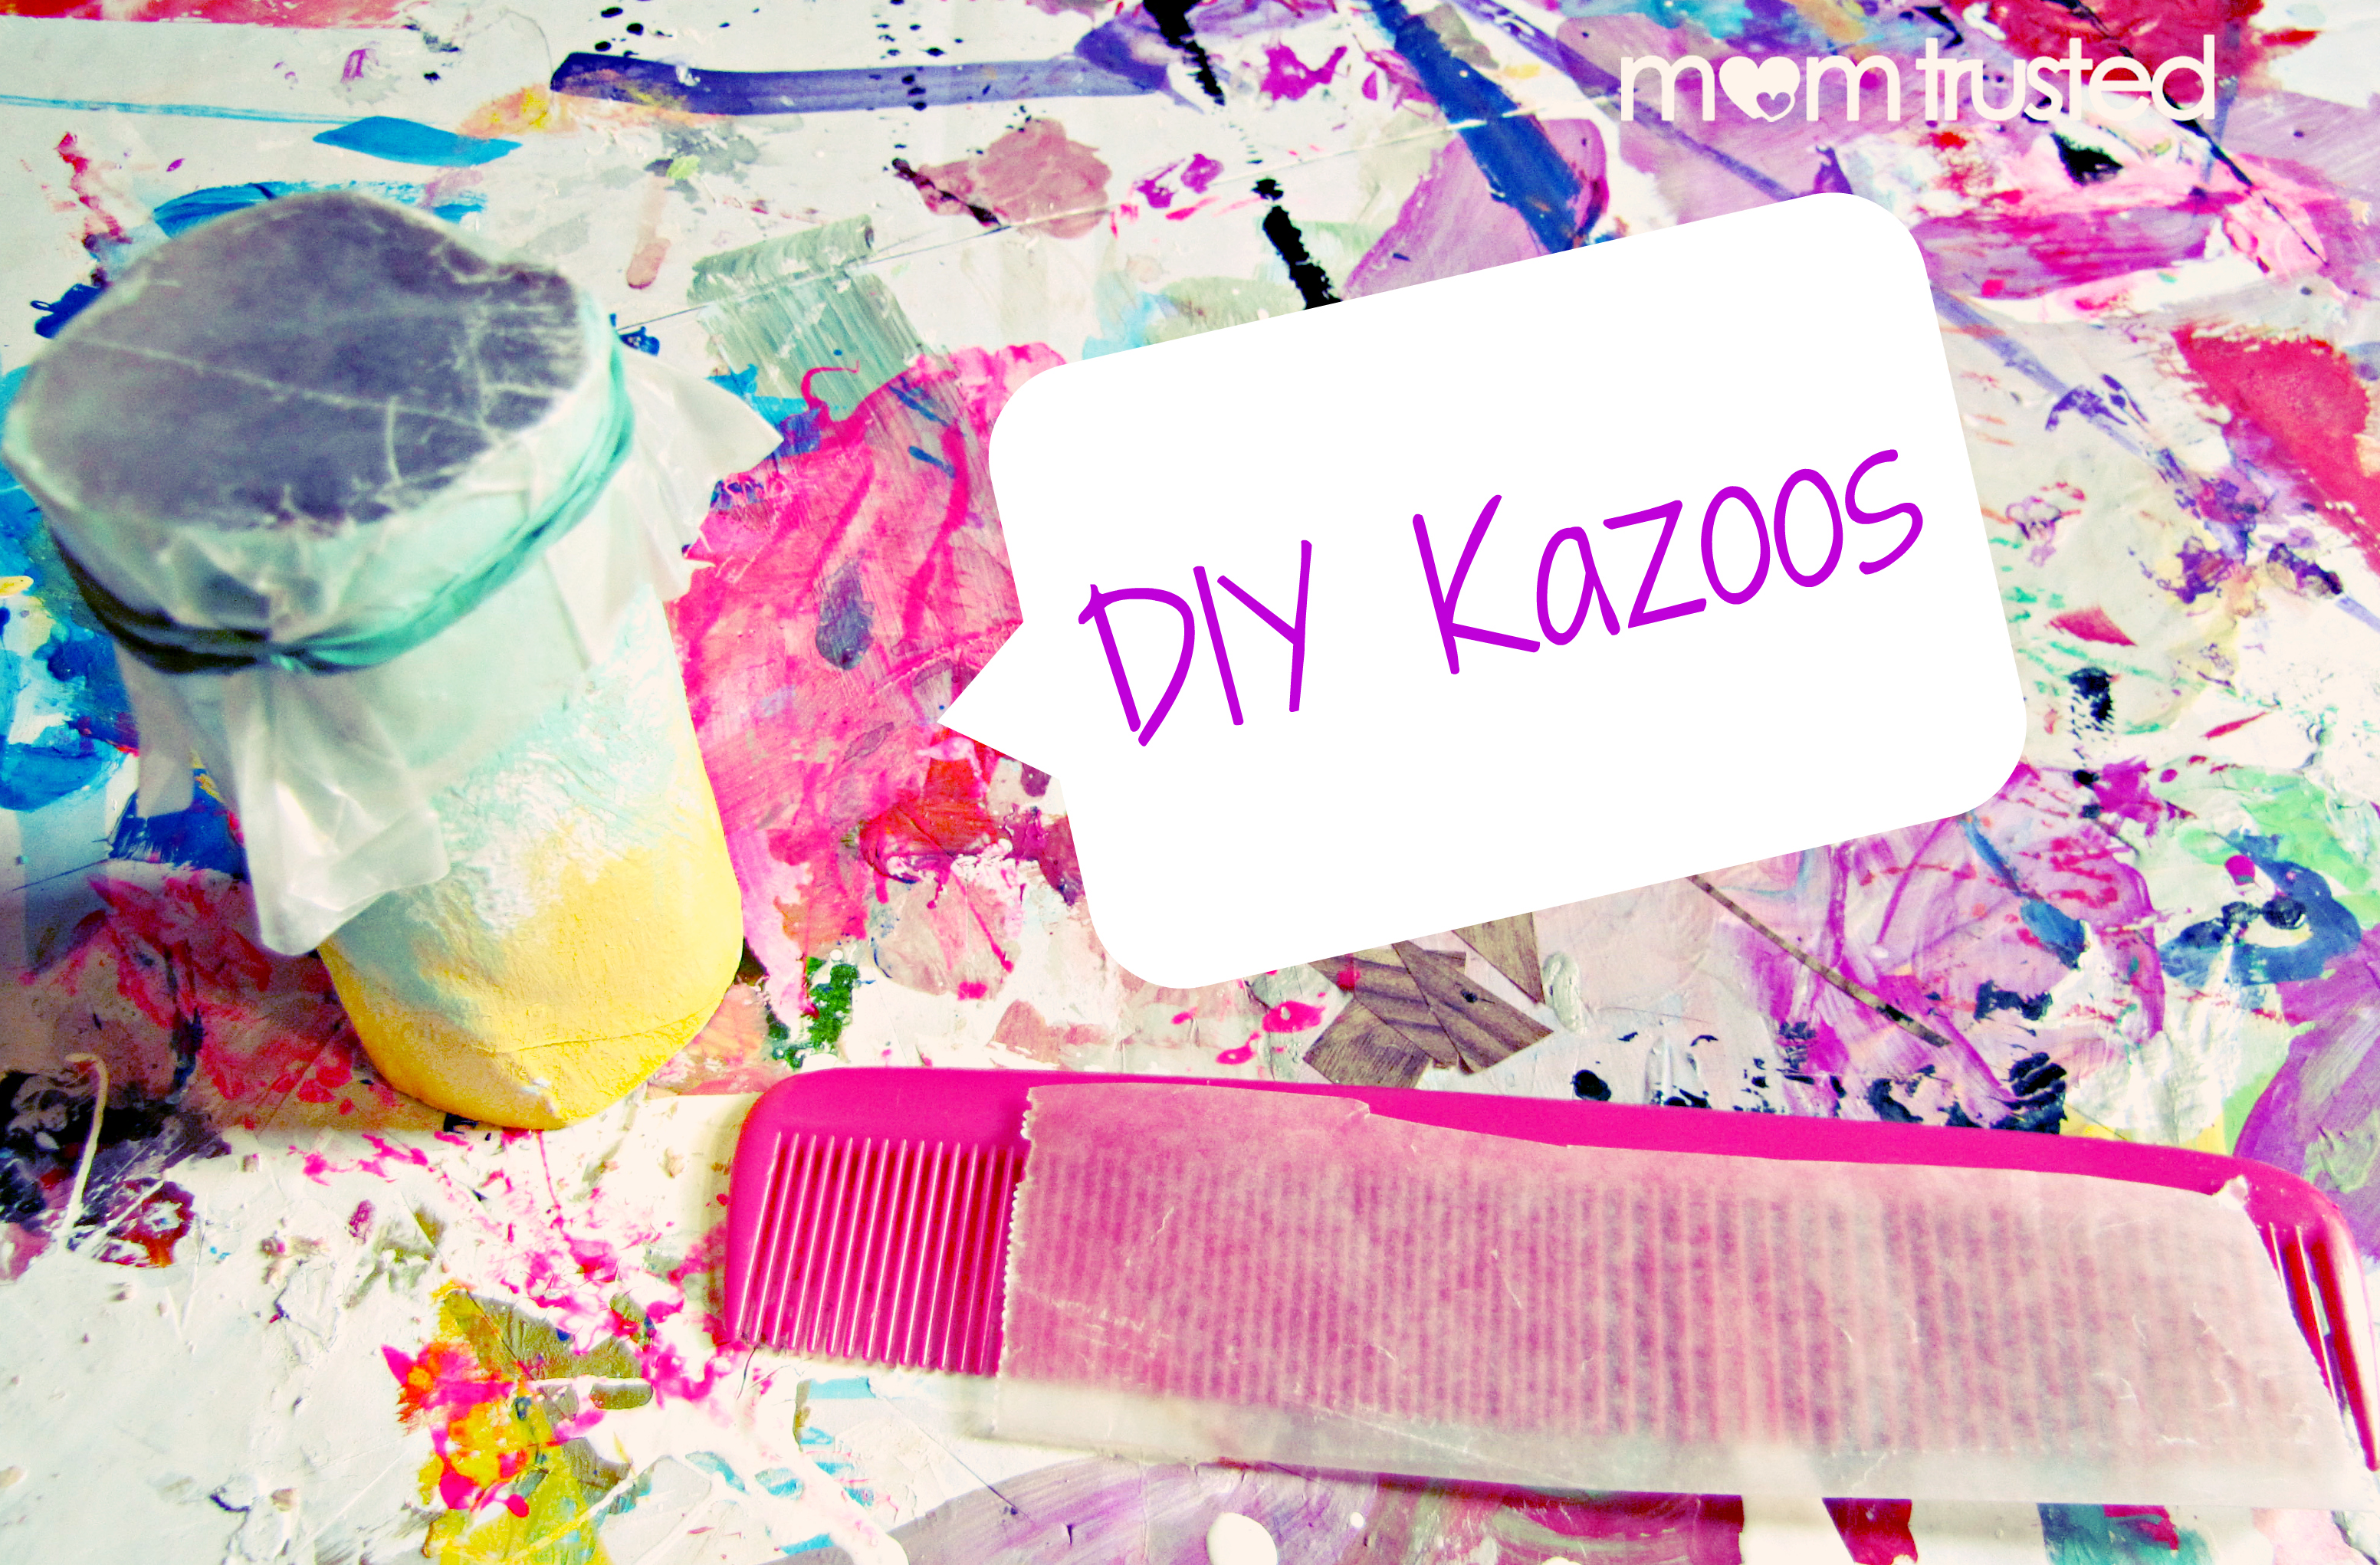 Diy Kazoos How To Make 2 Kinds Of Kazoo At Home